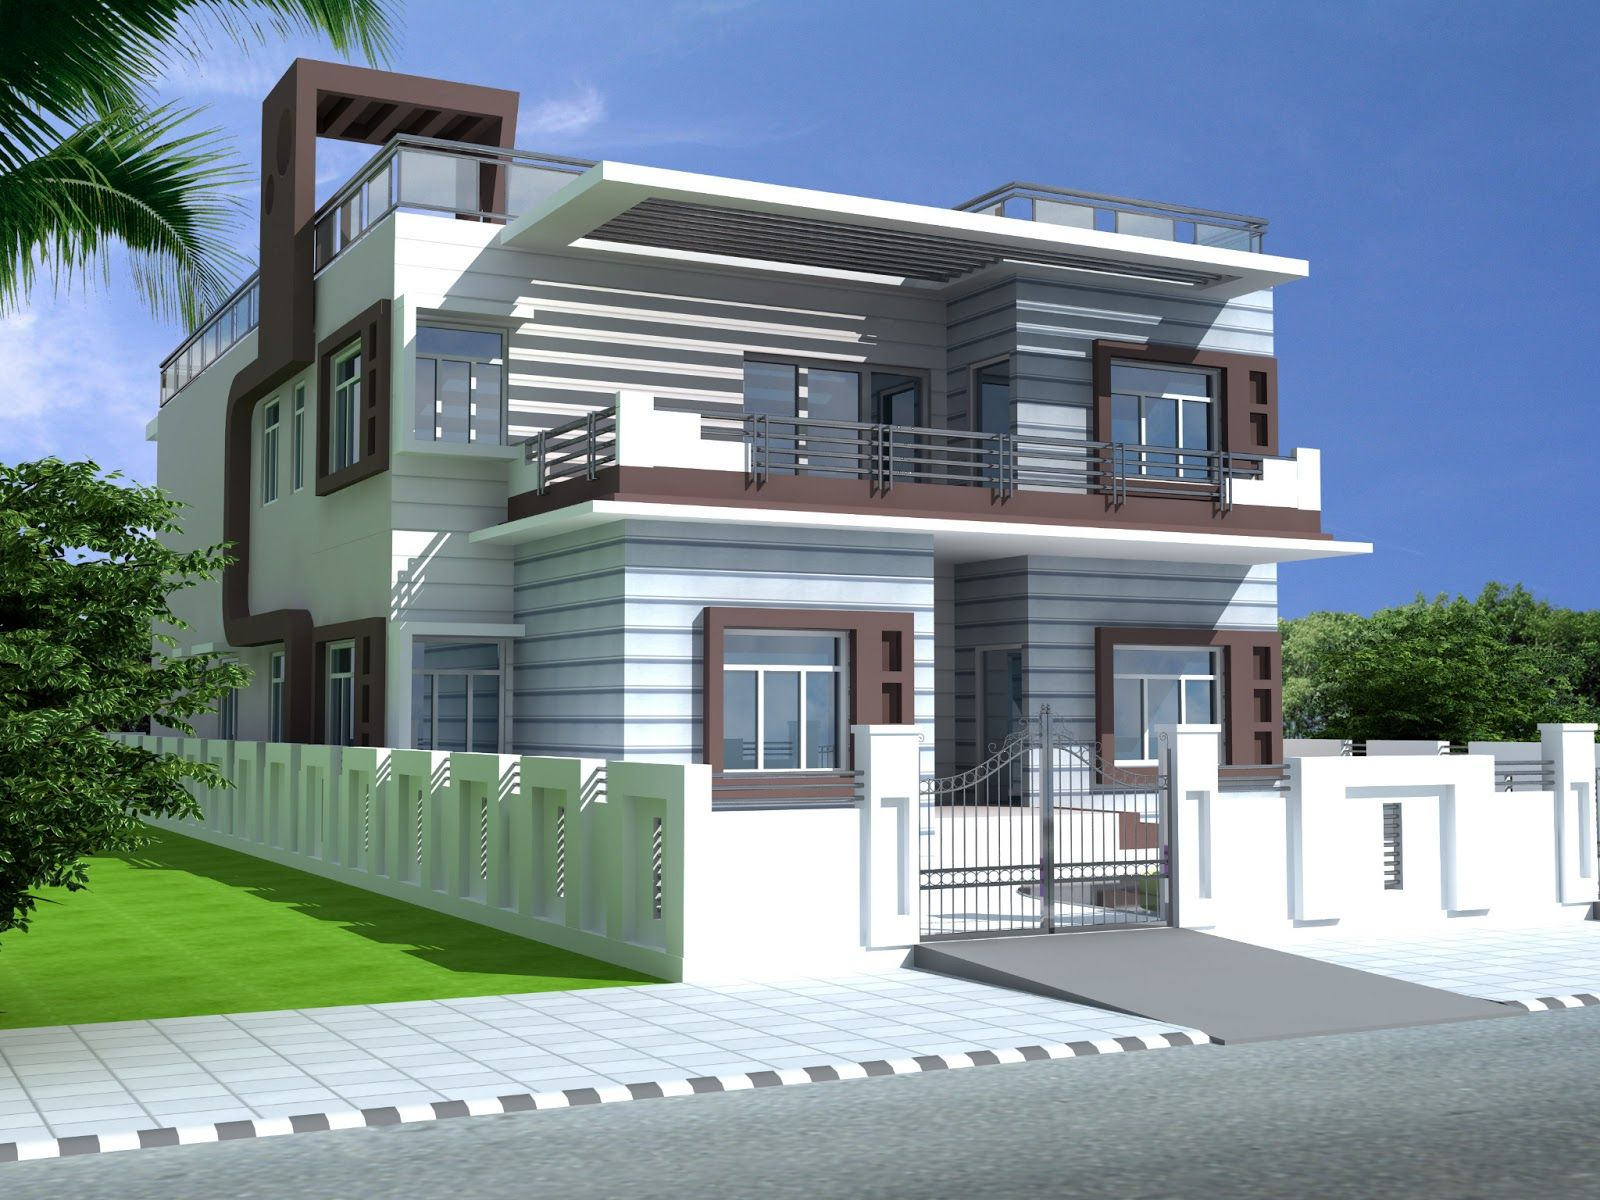 6 bedrooms duplex house design in 390m2 13m x 30m New duplex designs